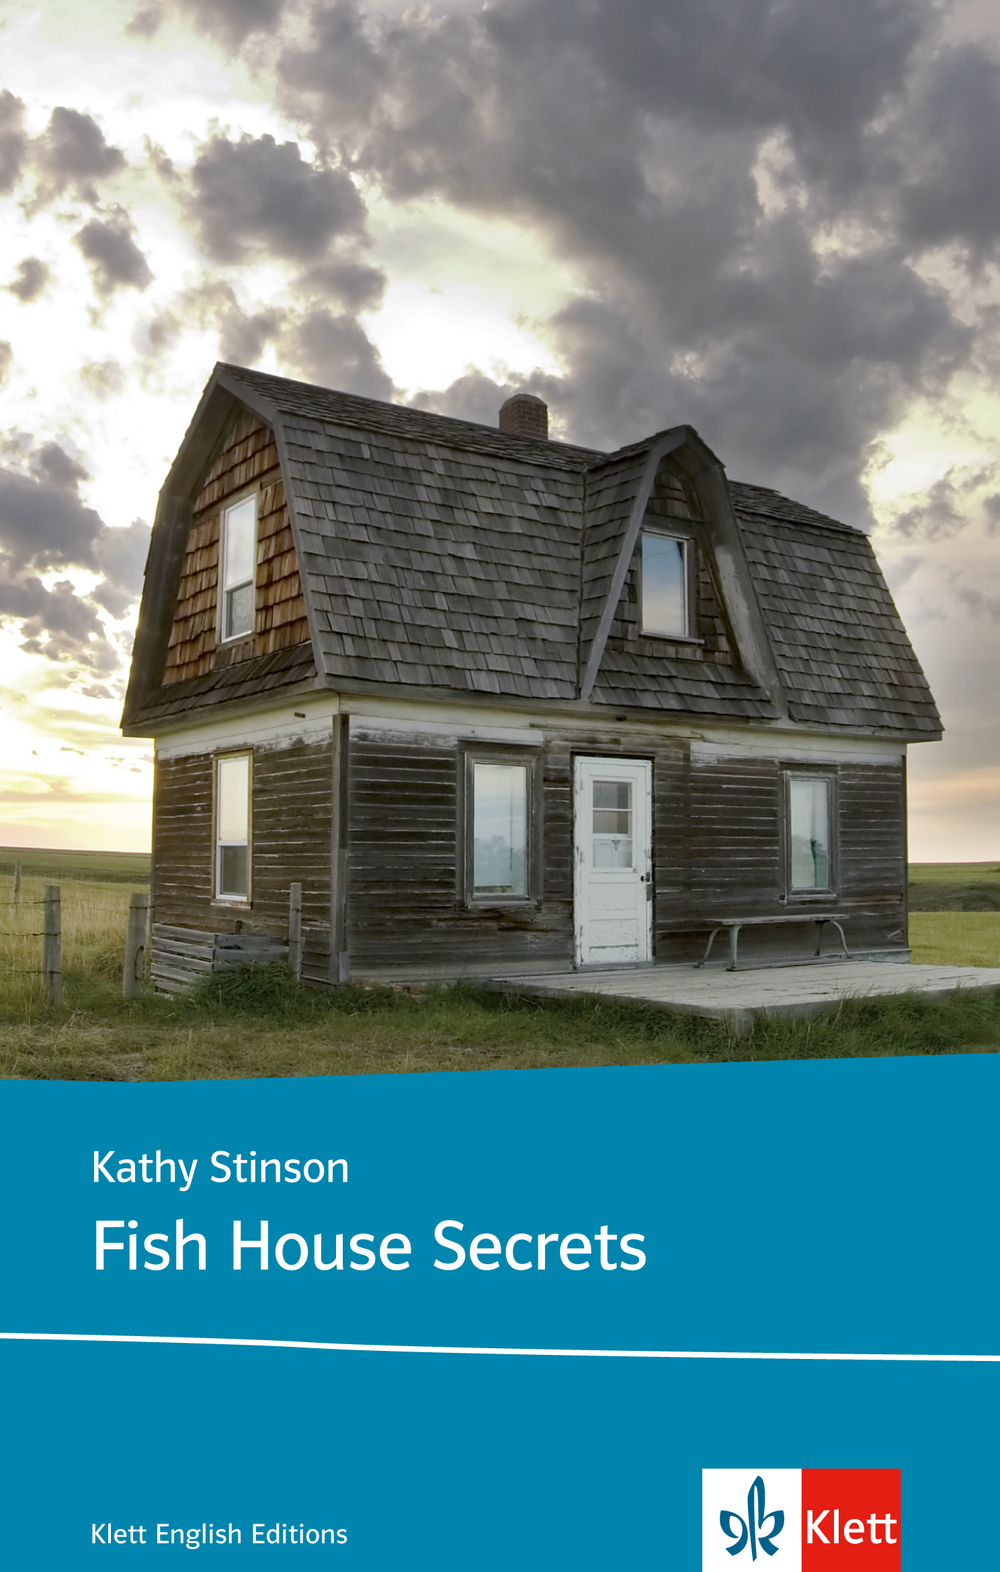 Fish House Secrets - Kathy Stinson